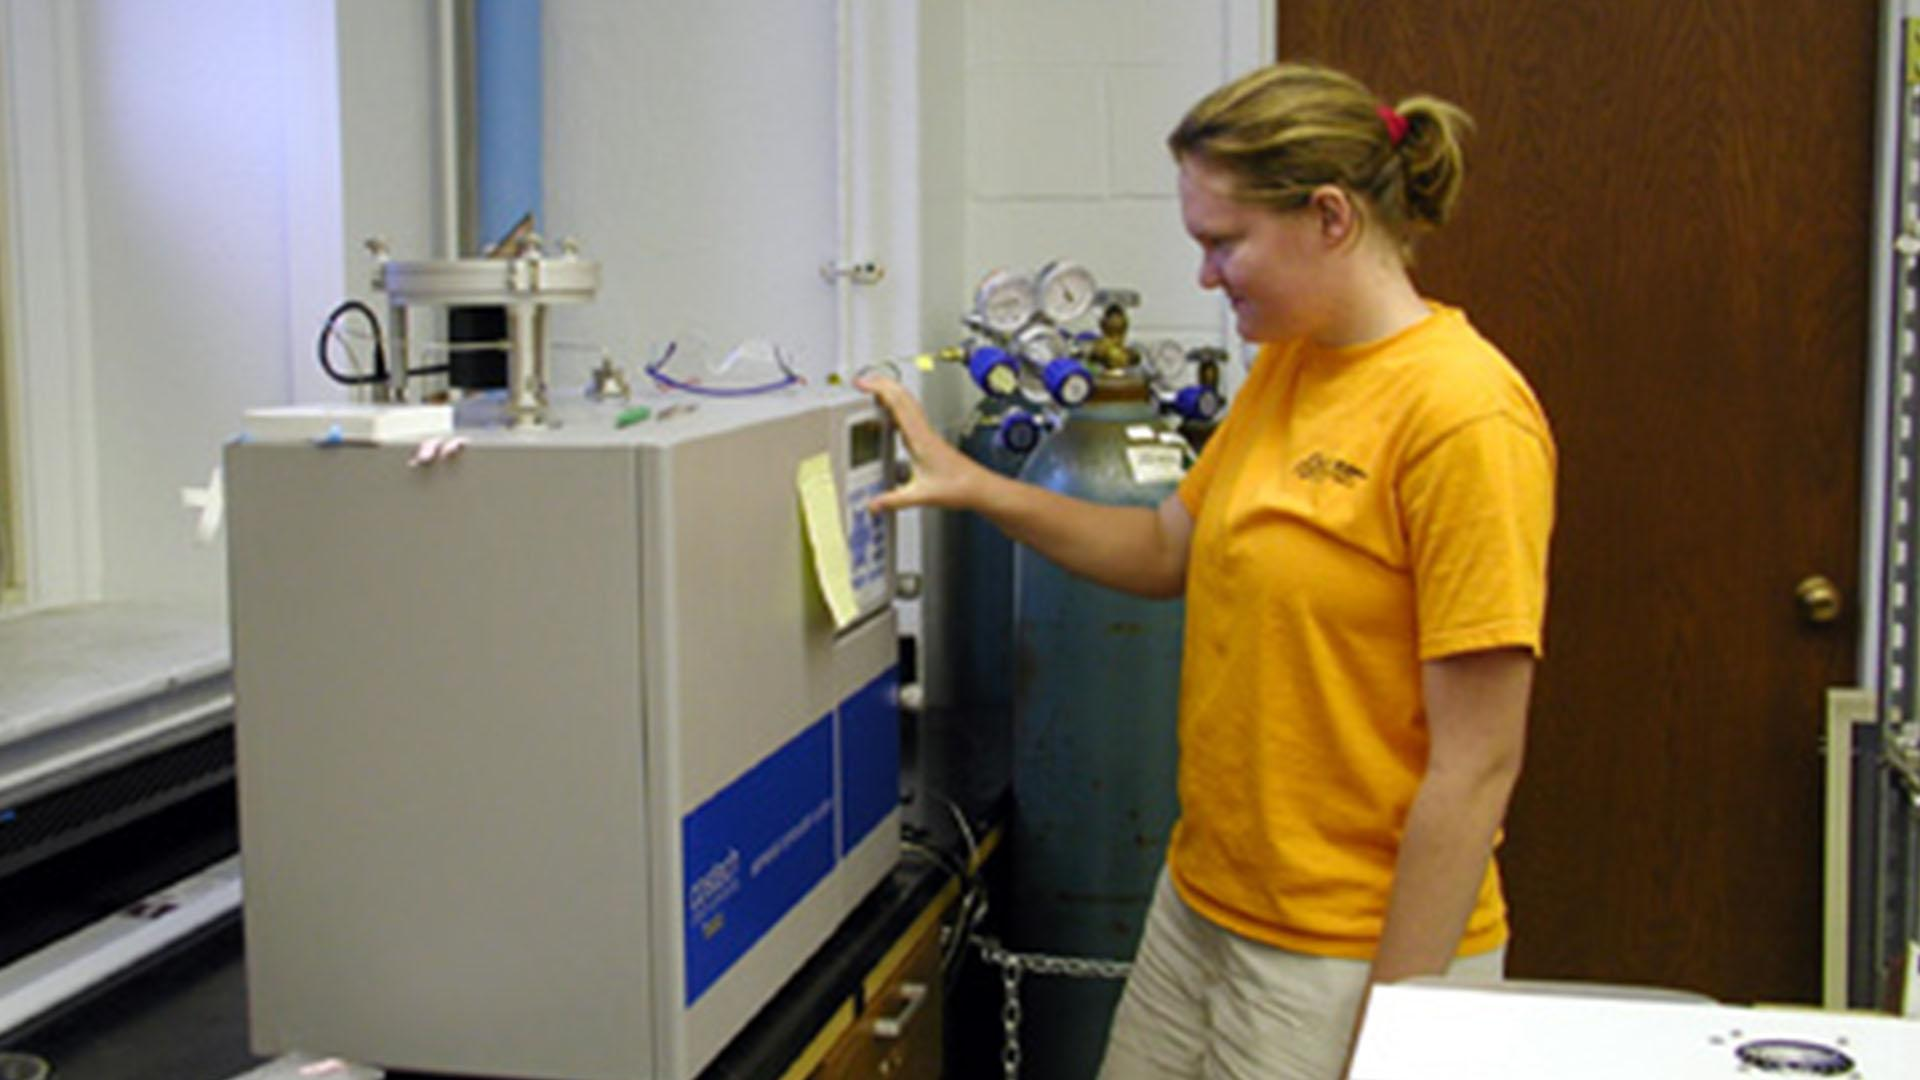 Student using stable isotope mass spectrometer in lab.